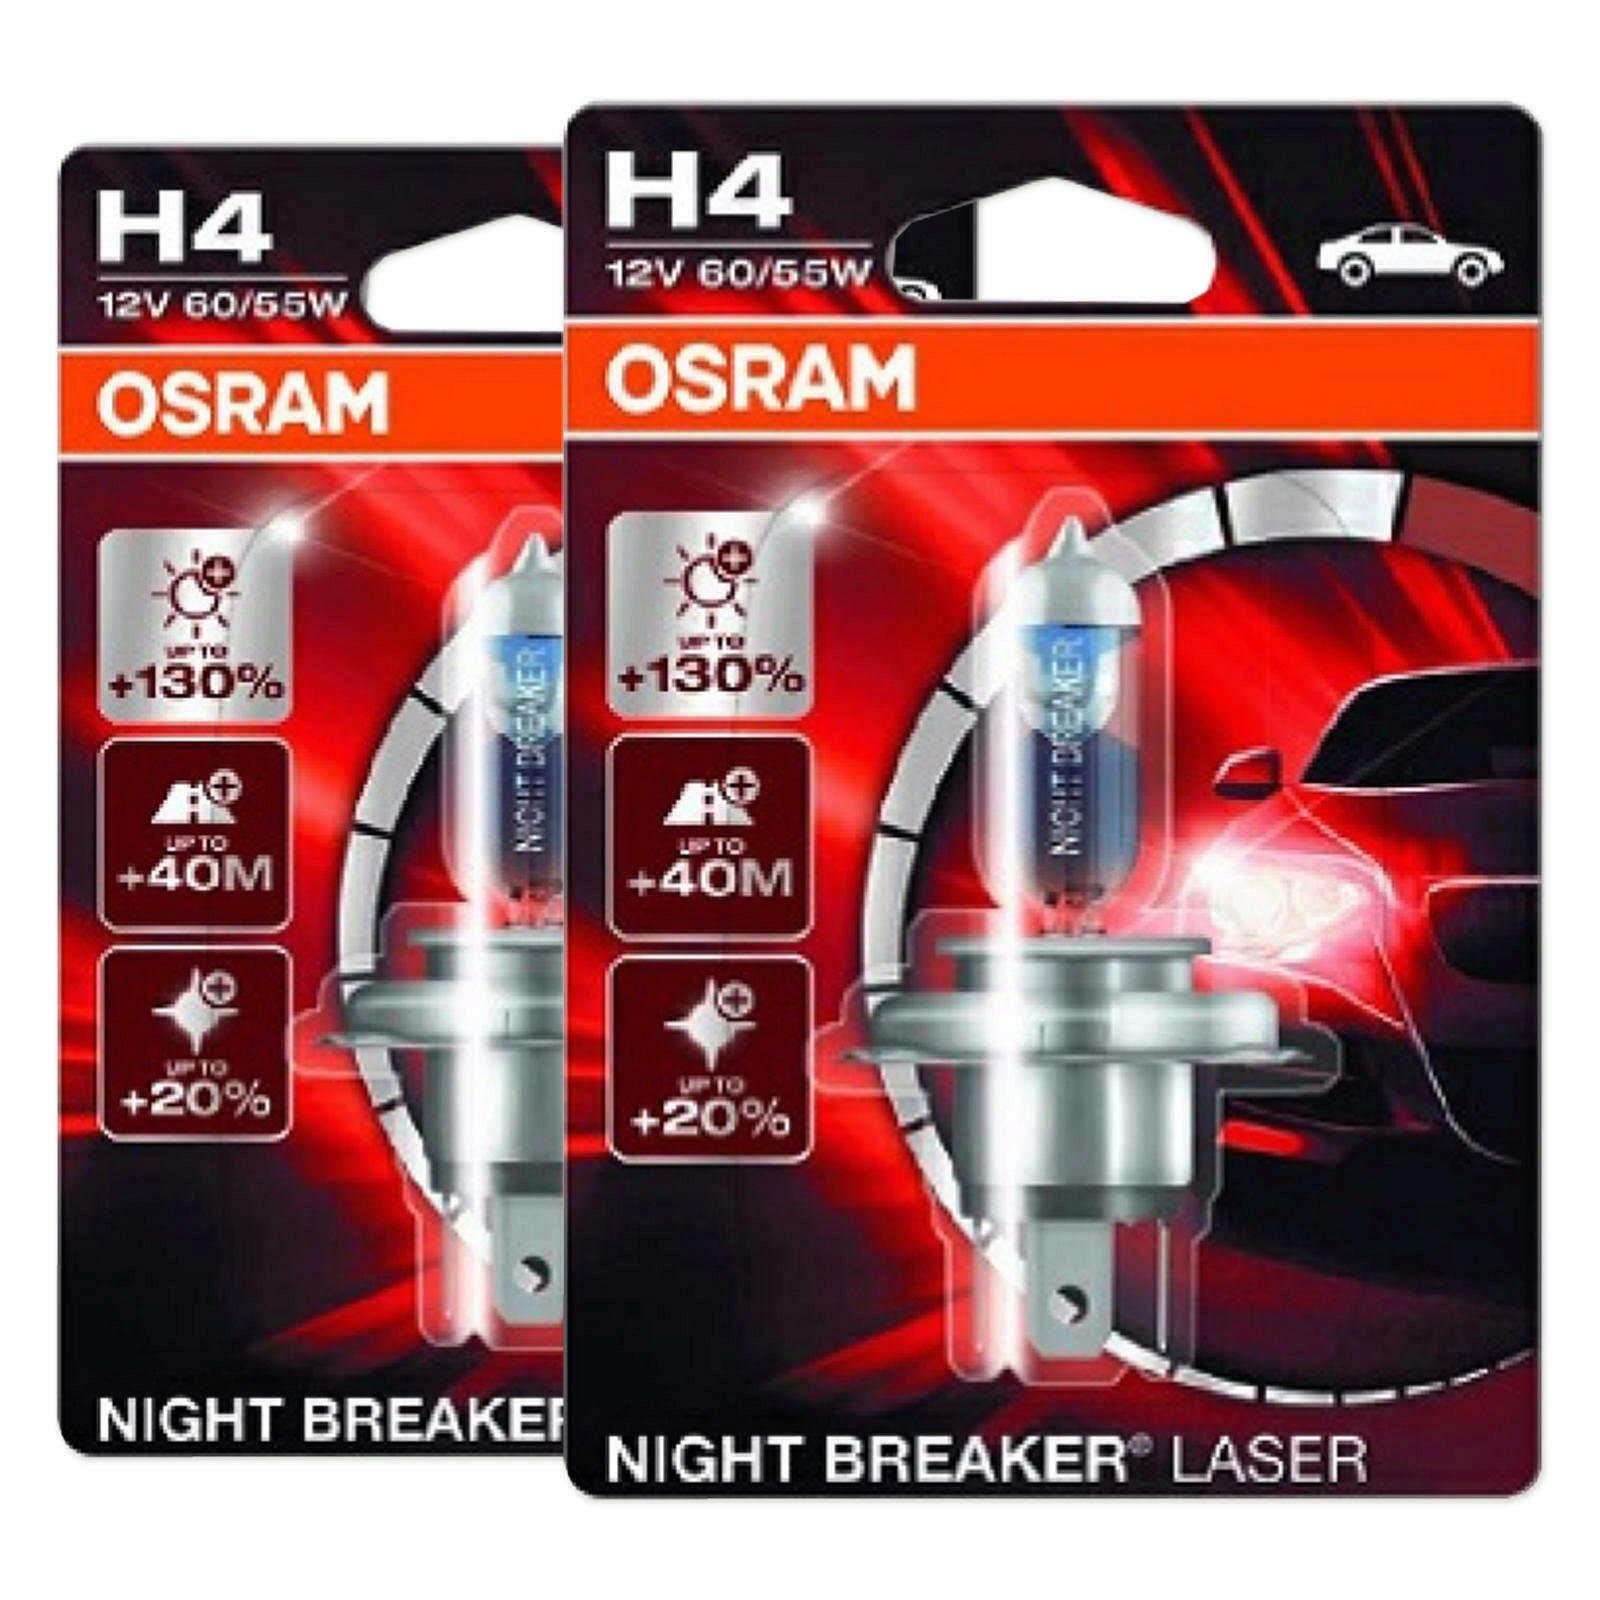 2x OSRAM NIGHT BREAKER LASER H4